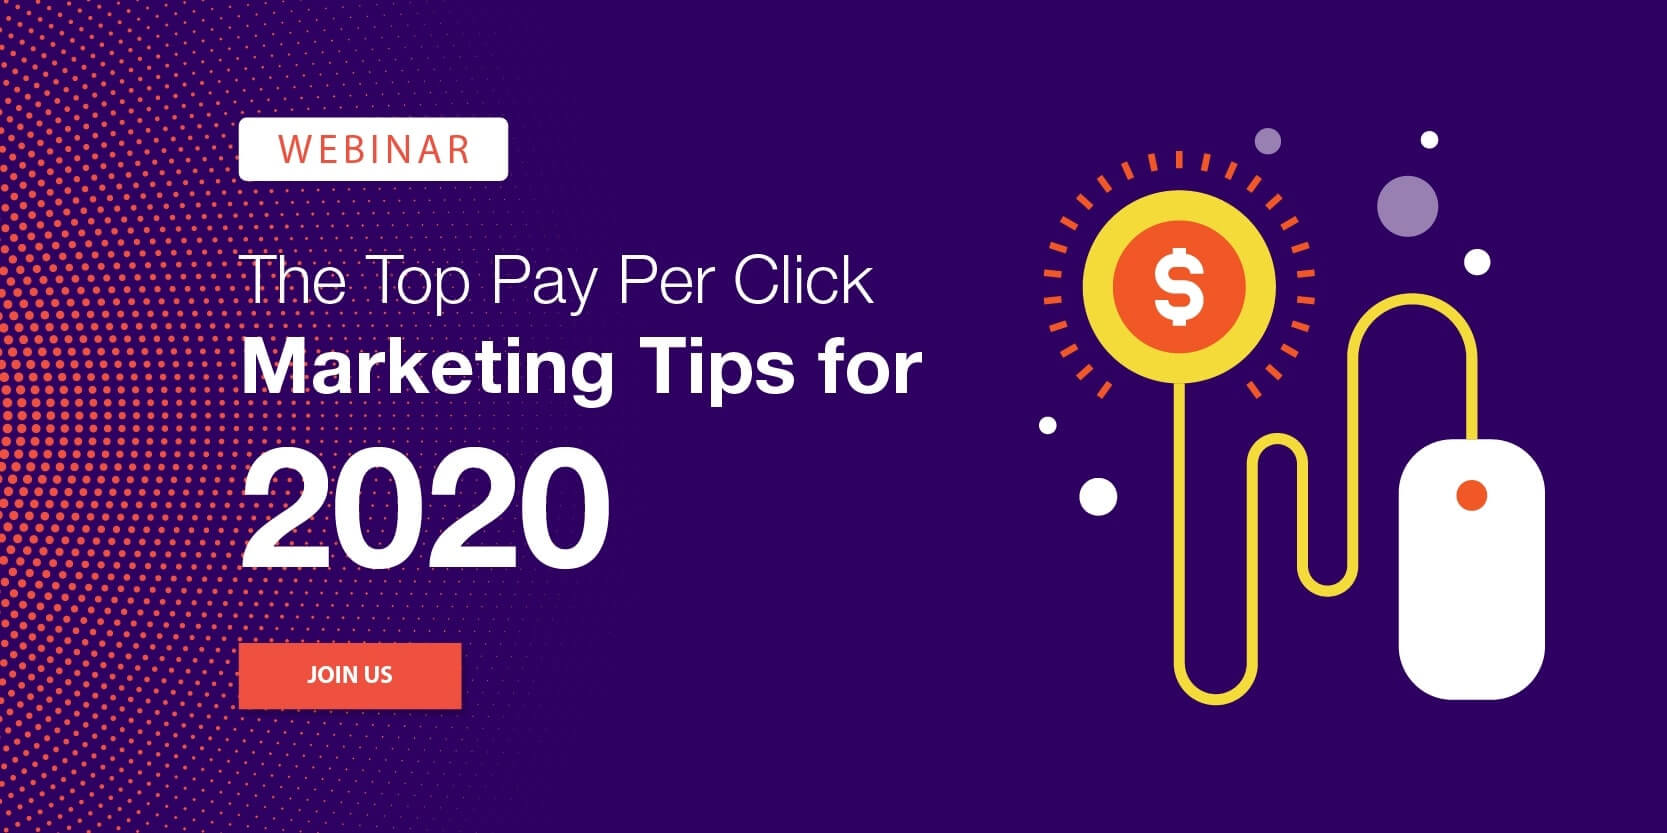 Join our insightful webinar titled the top pay per click marketing tips for 2020